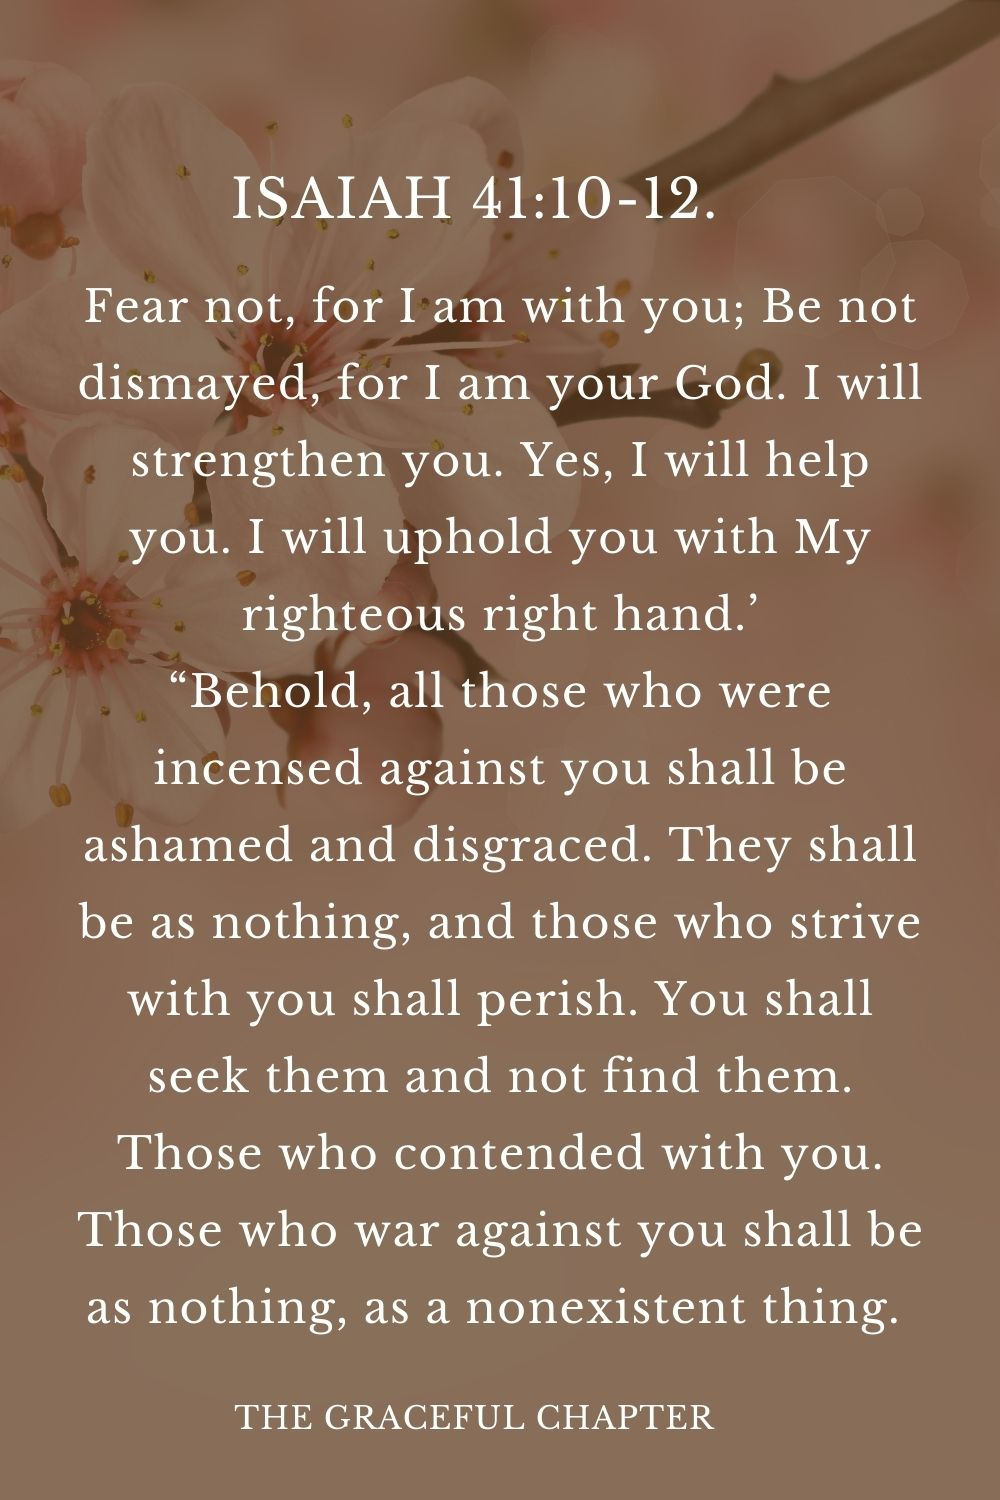 """Fear not, for I am with you; Be not dismayed, for I am your God. I will strengthen you. Yes, I will help you. I will uphold you with My righteous right hand.' """"Behold, all those who were incensed against you shall be ashamed and disgraced. They shall be as nothing, and those who strive with you shall perish. You shall seek them and not find them. Those who contended with you. Those who war against you shall be as nothing, as a nonexistent thing.  Isaiah 41:10-12."""